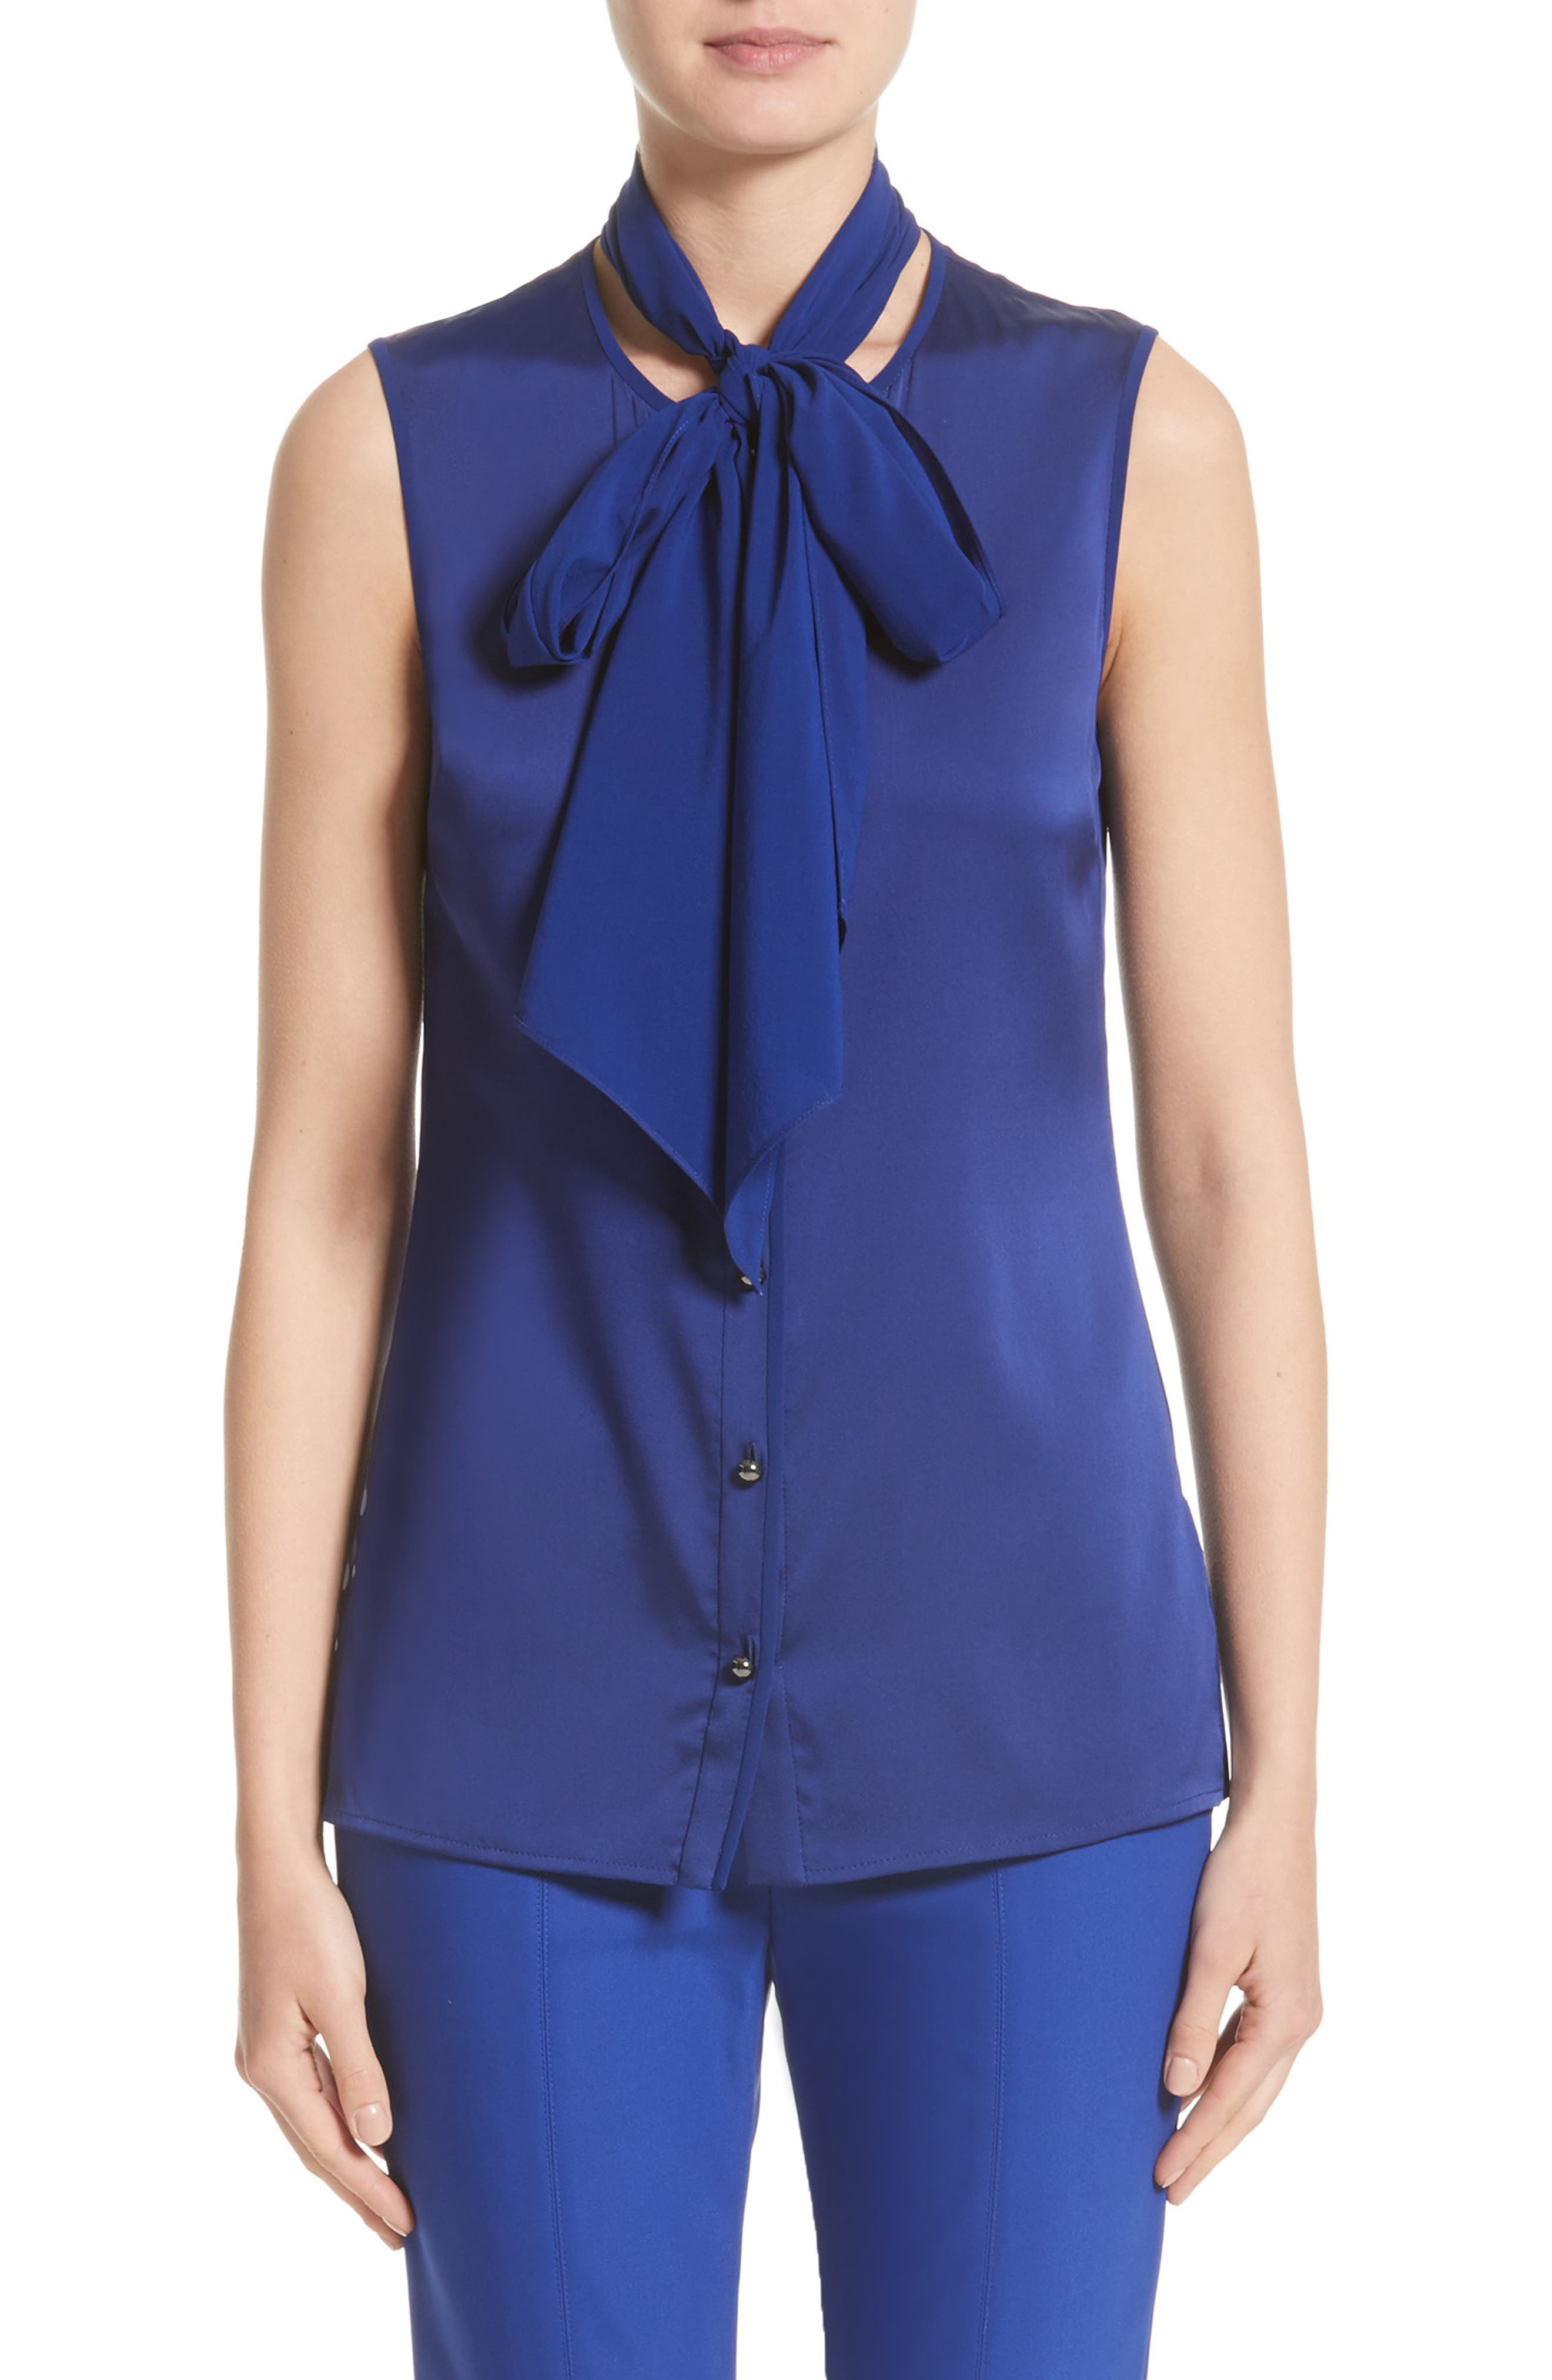 Main Image - St. John Collection Removable Tie Stretch Silk Satin Georgette Blouse